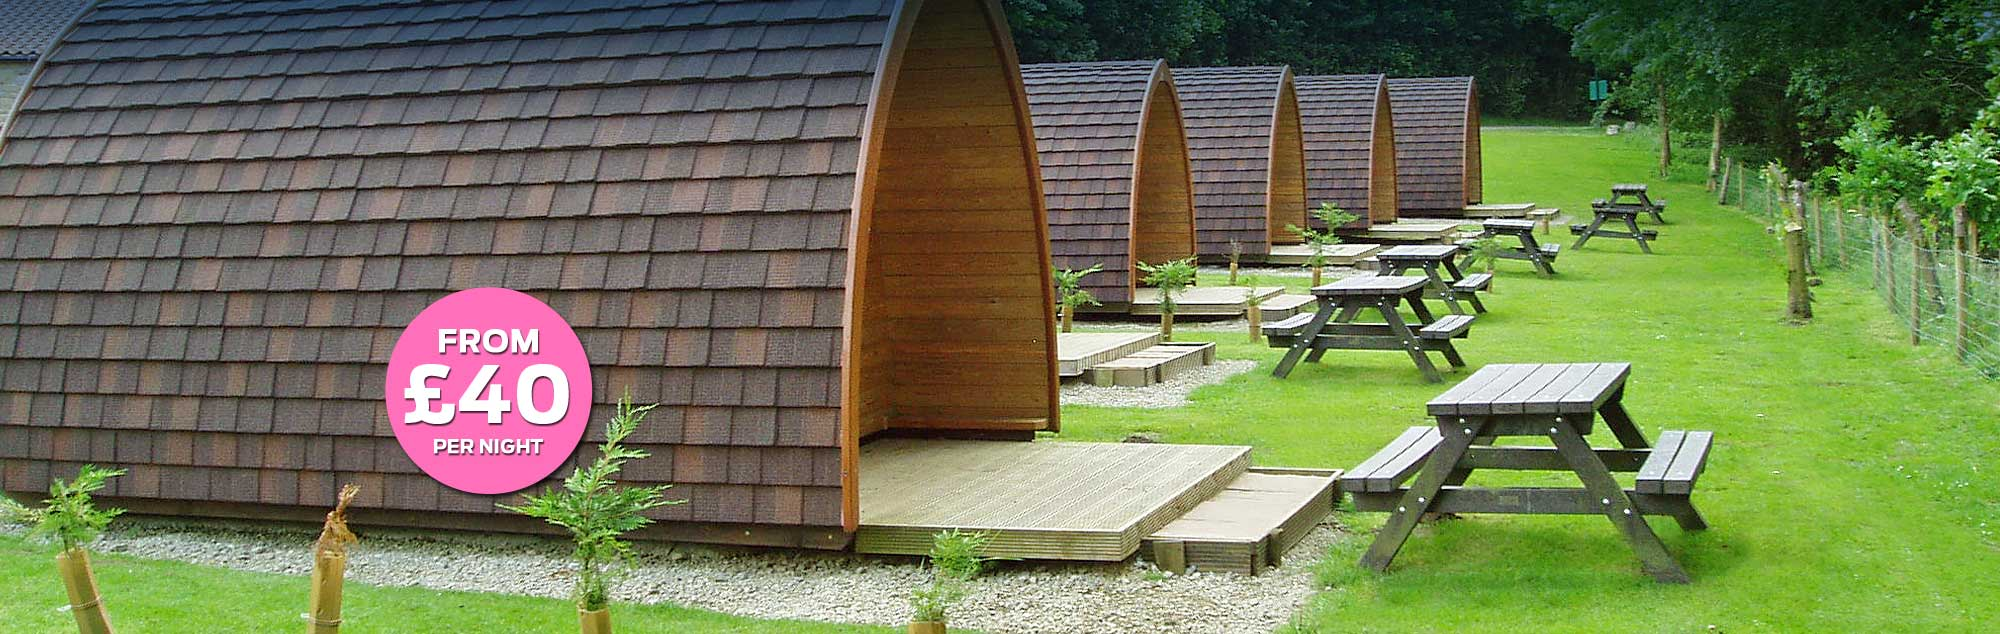 Glamping Pod holidays in Yorkshire - book now